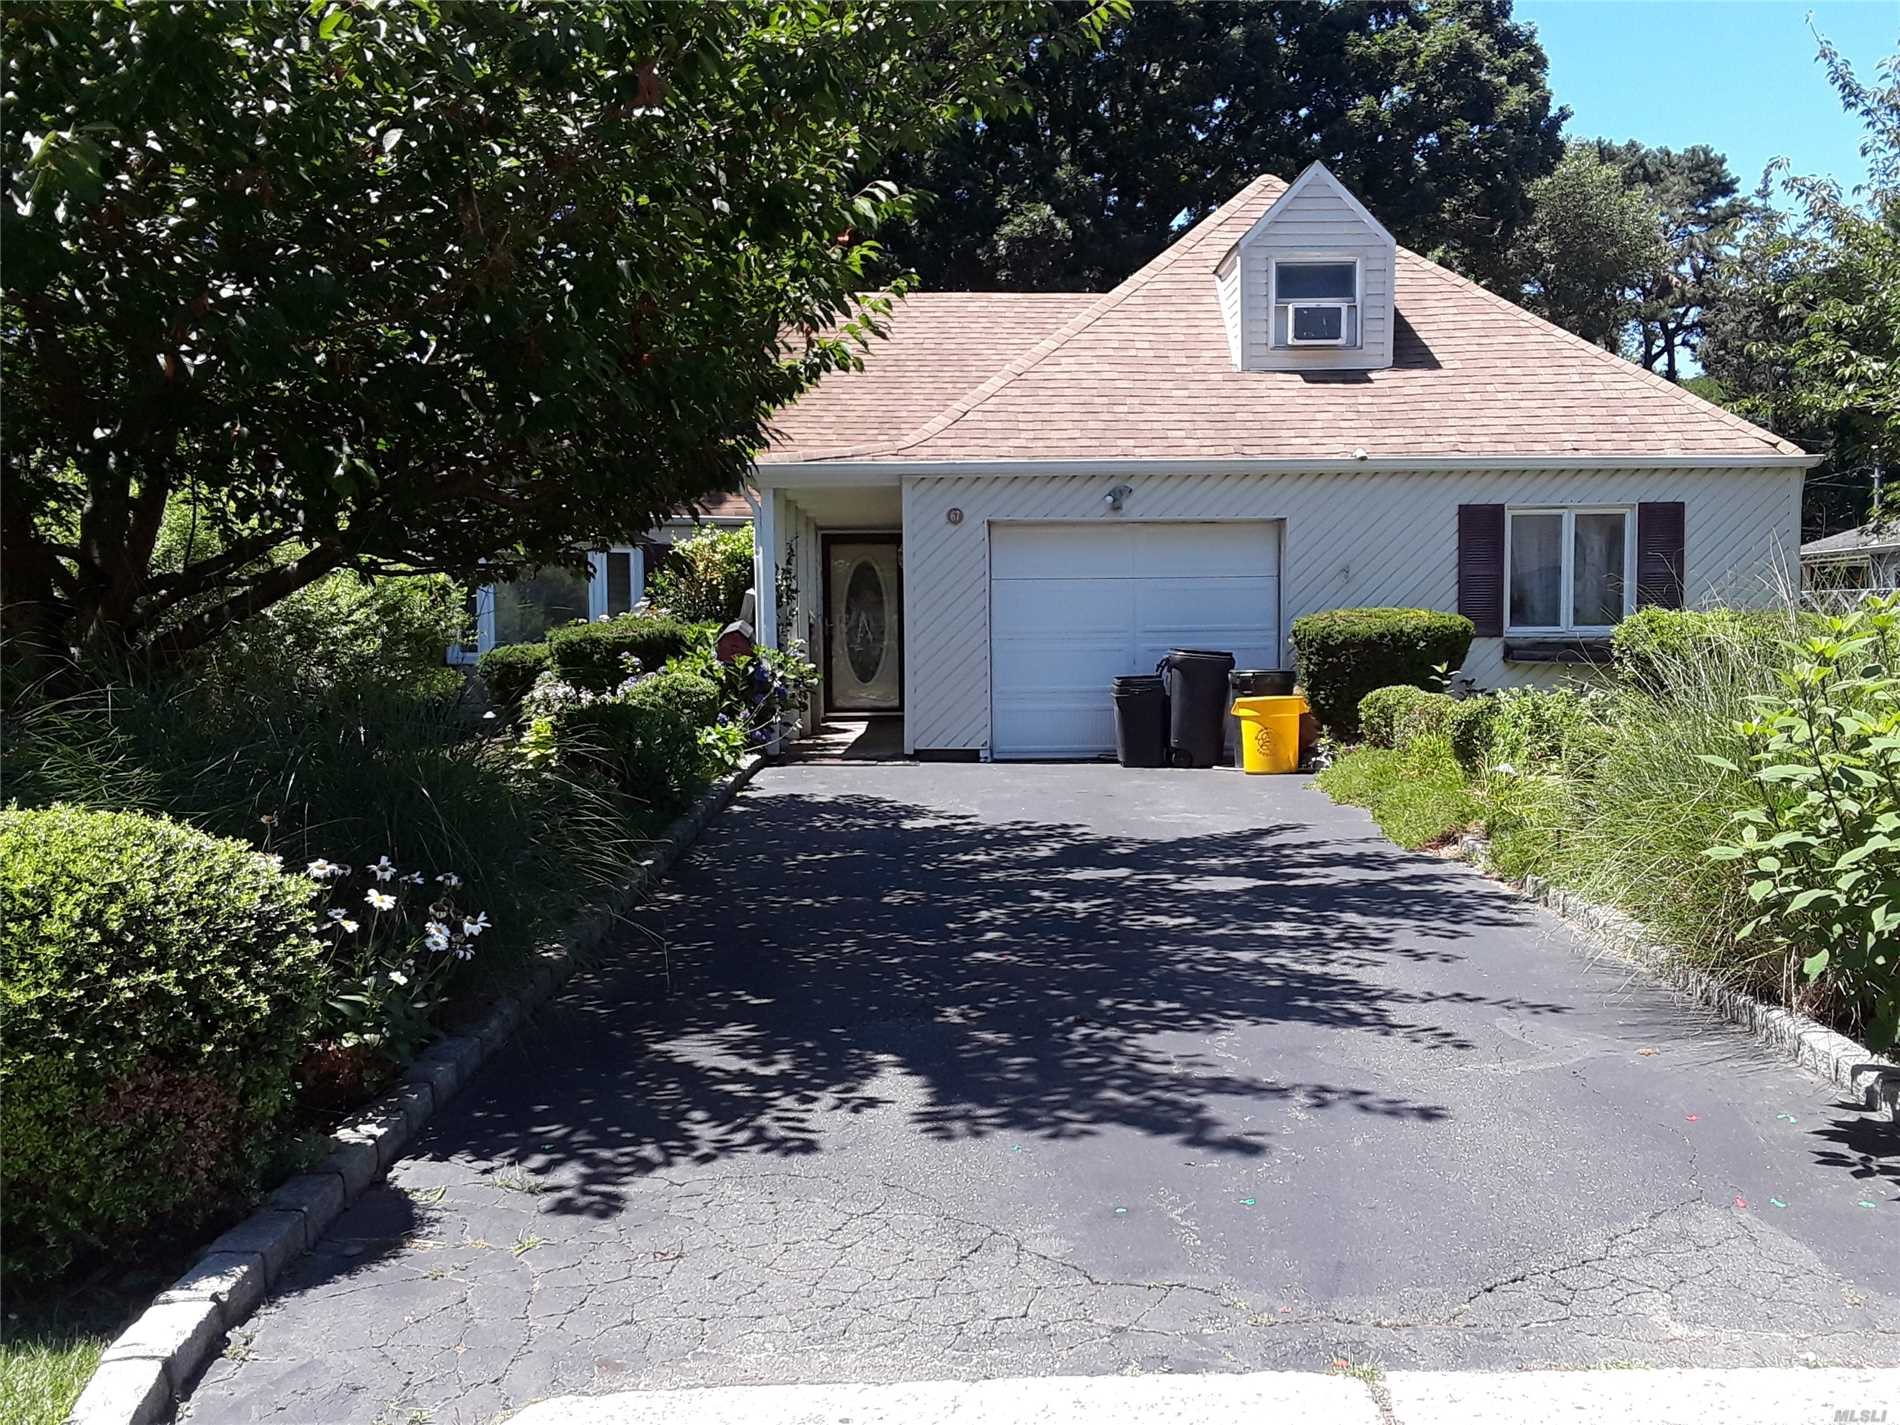 Beautiful 3 Bedrooms 3 Full Bath Home..With In Ground Pool And Fenced Back Yard 1 Car Garage.